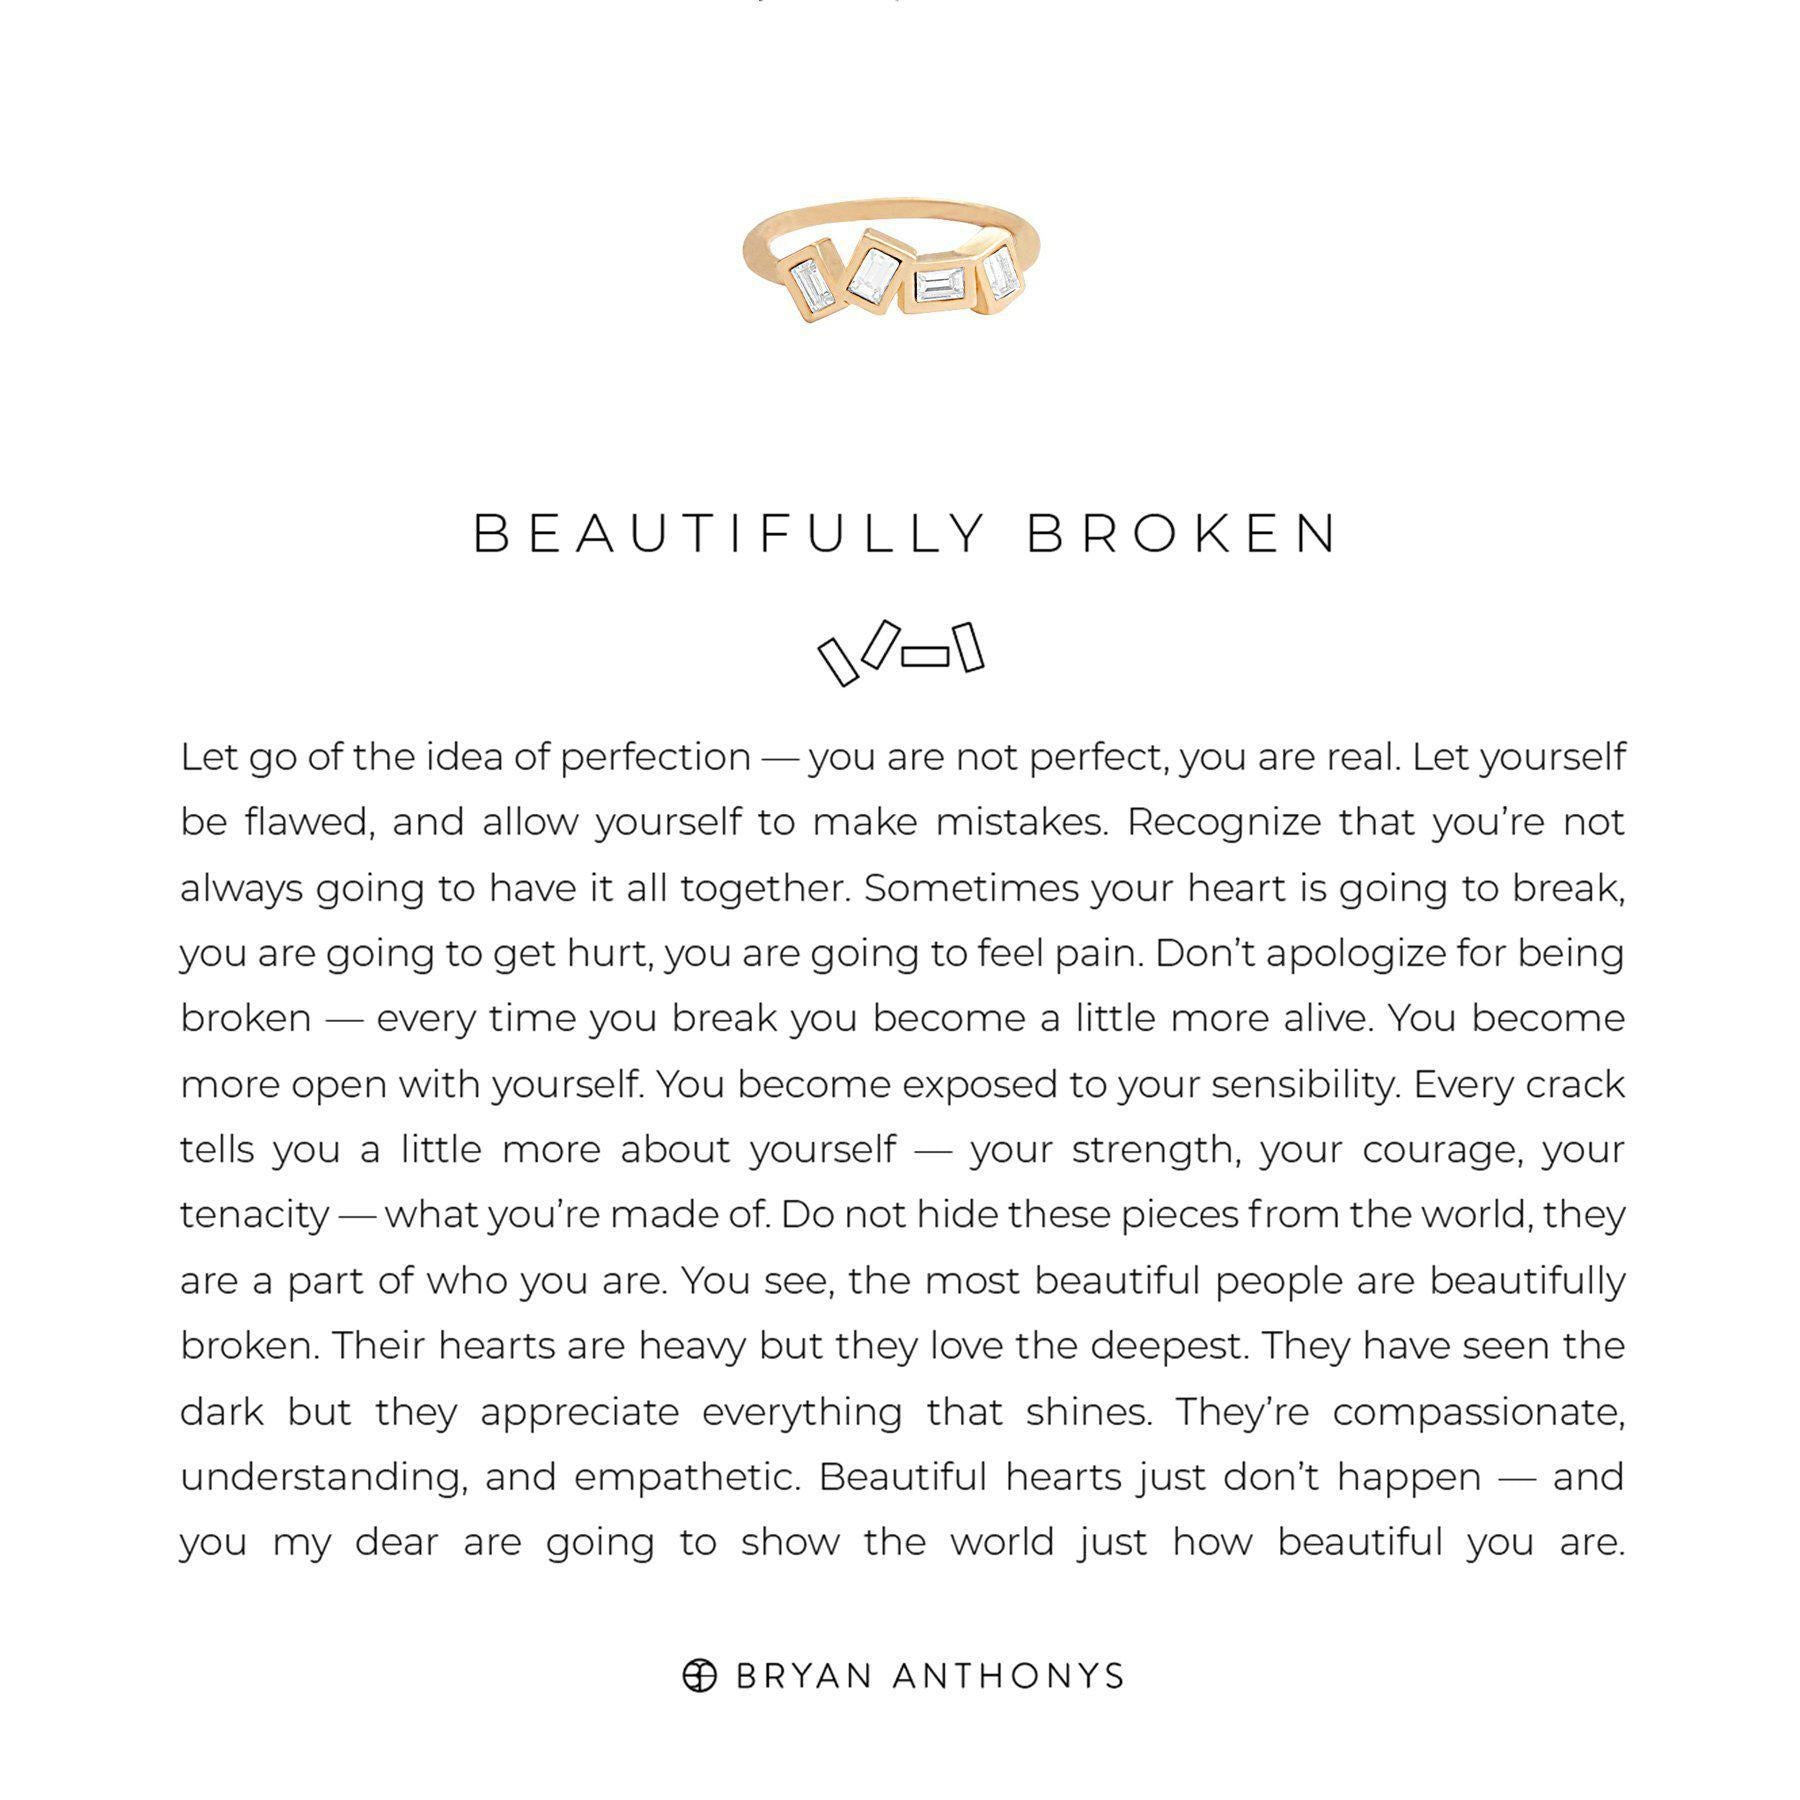 Beautifully Broken-Necklace-Bryan Anthonys-8-Gold-Lizzy's Pink Boutique